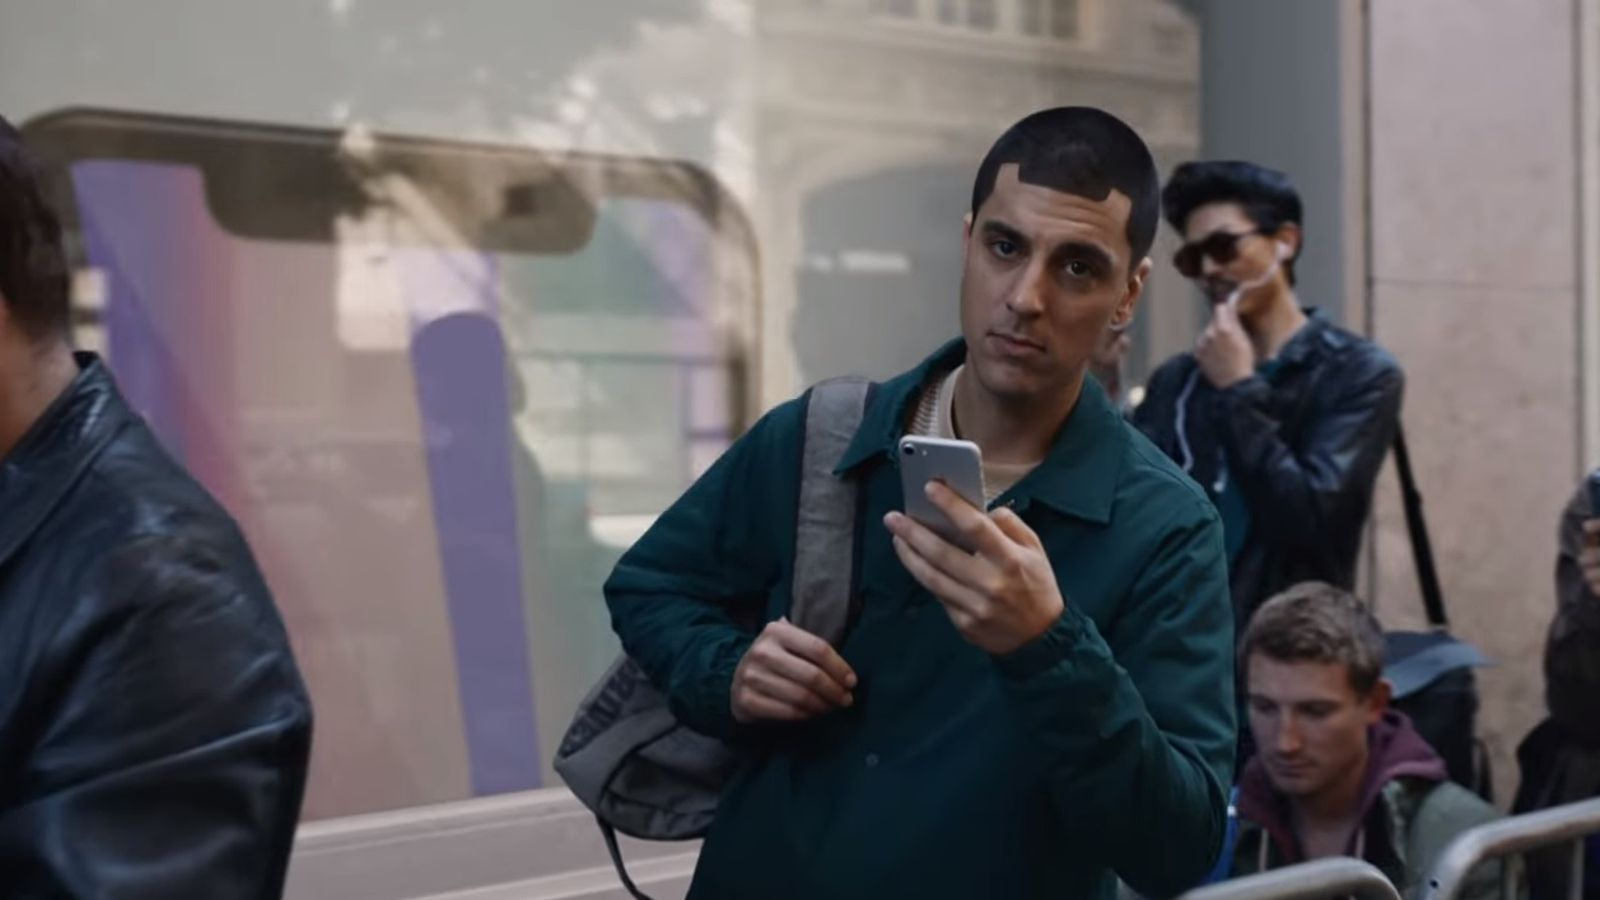 SAMSUNG IPHONE X COMMERCIAL